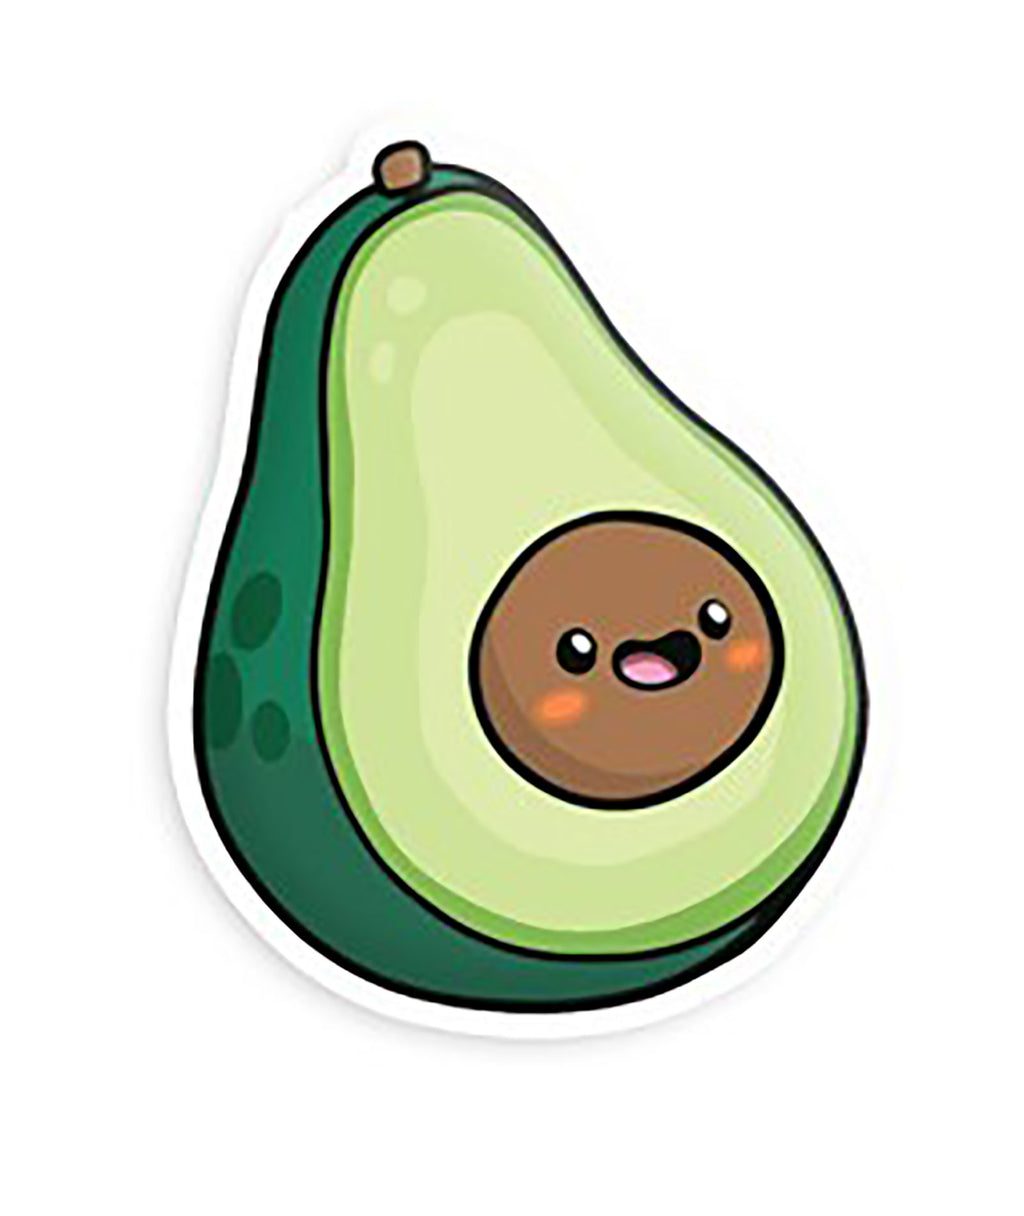 Squishable Vinyl Sticker Big Avocado